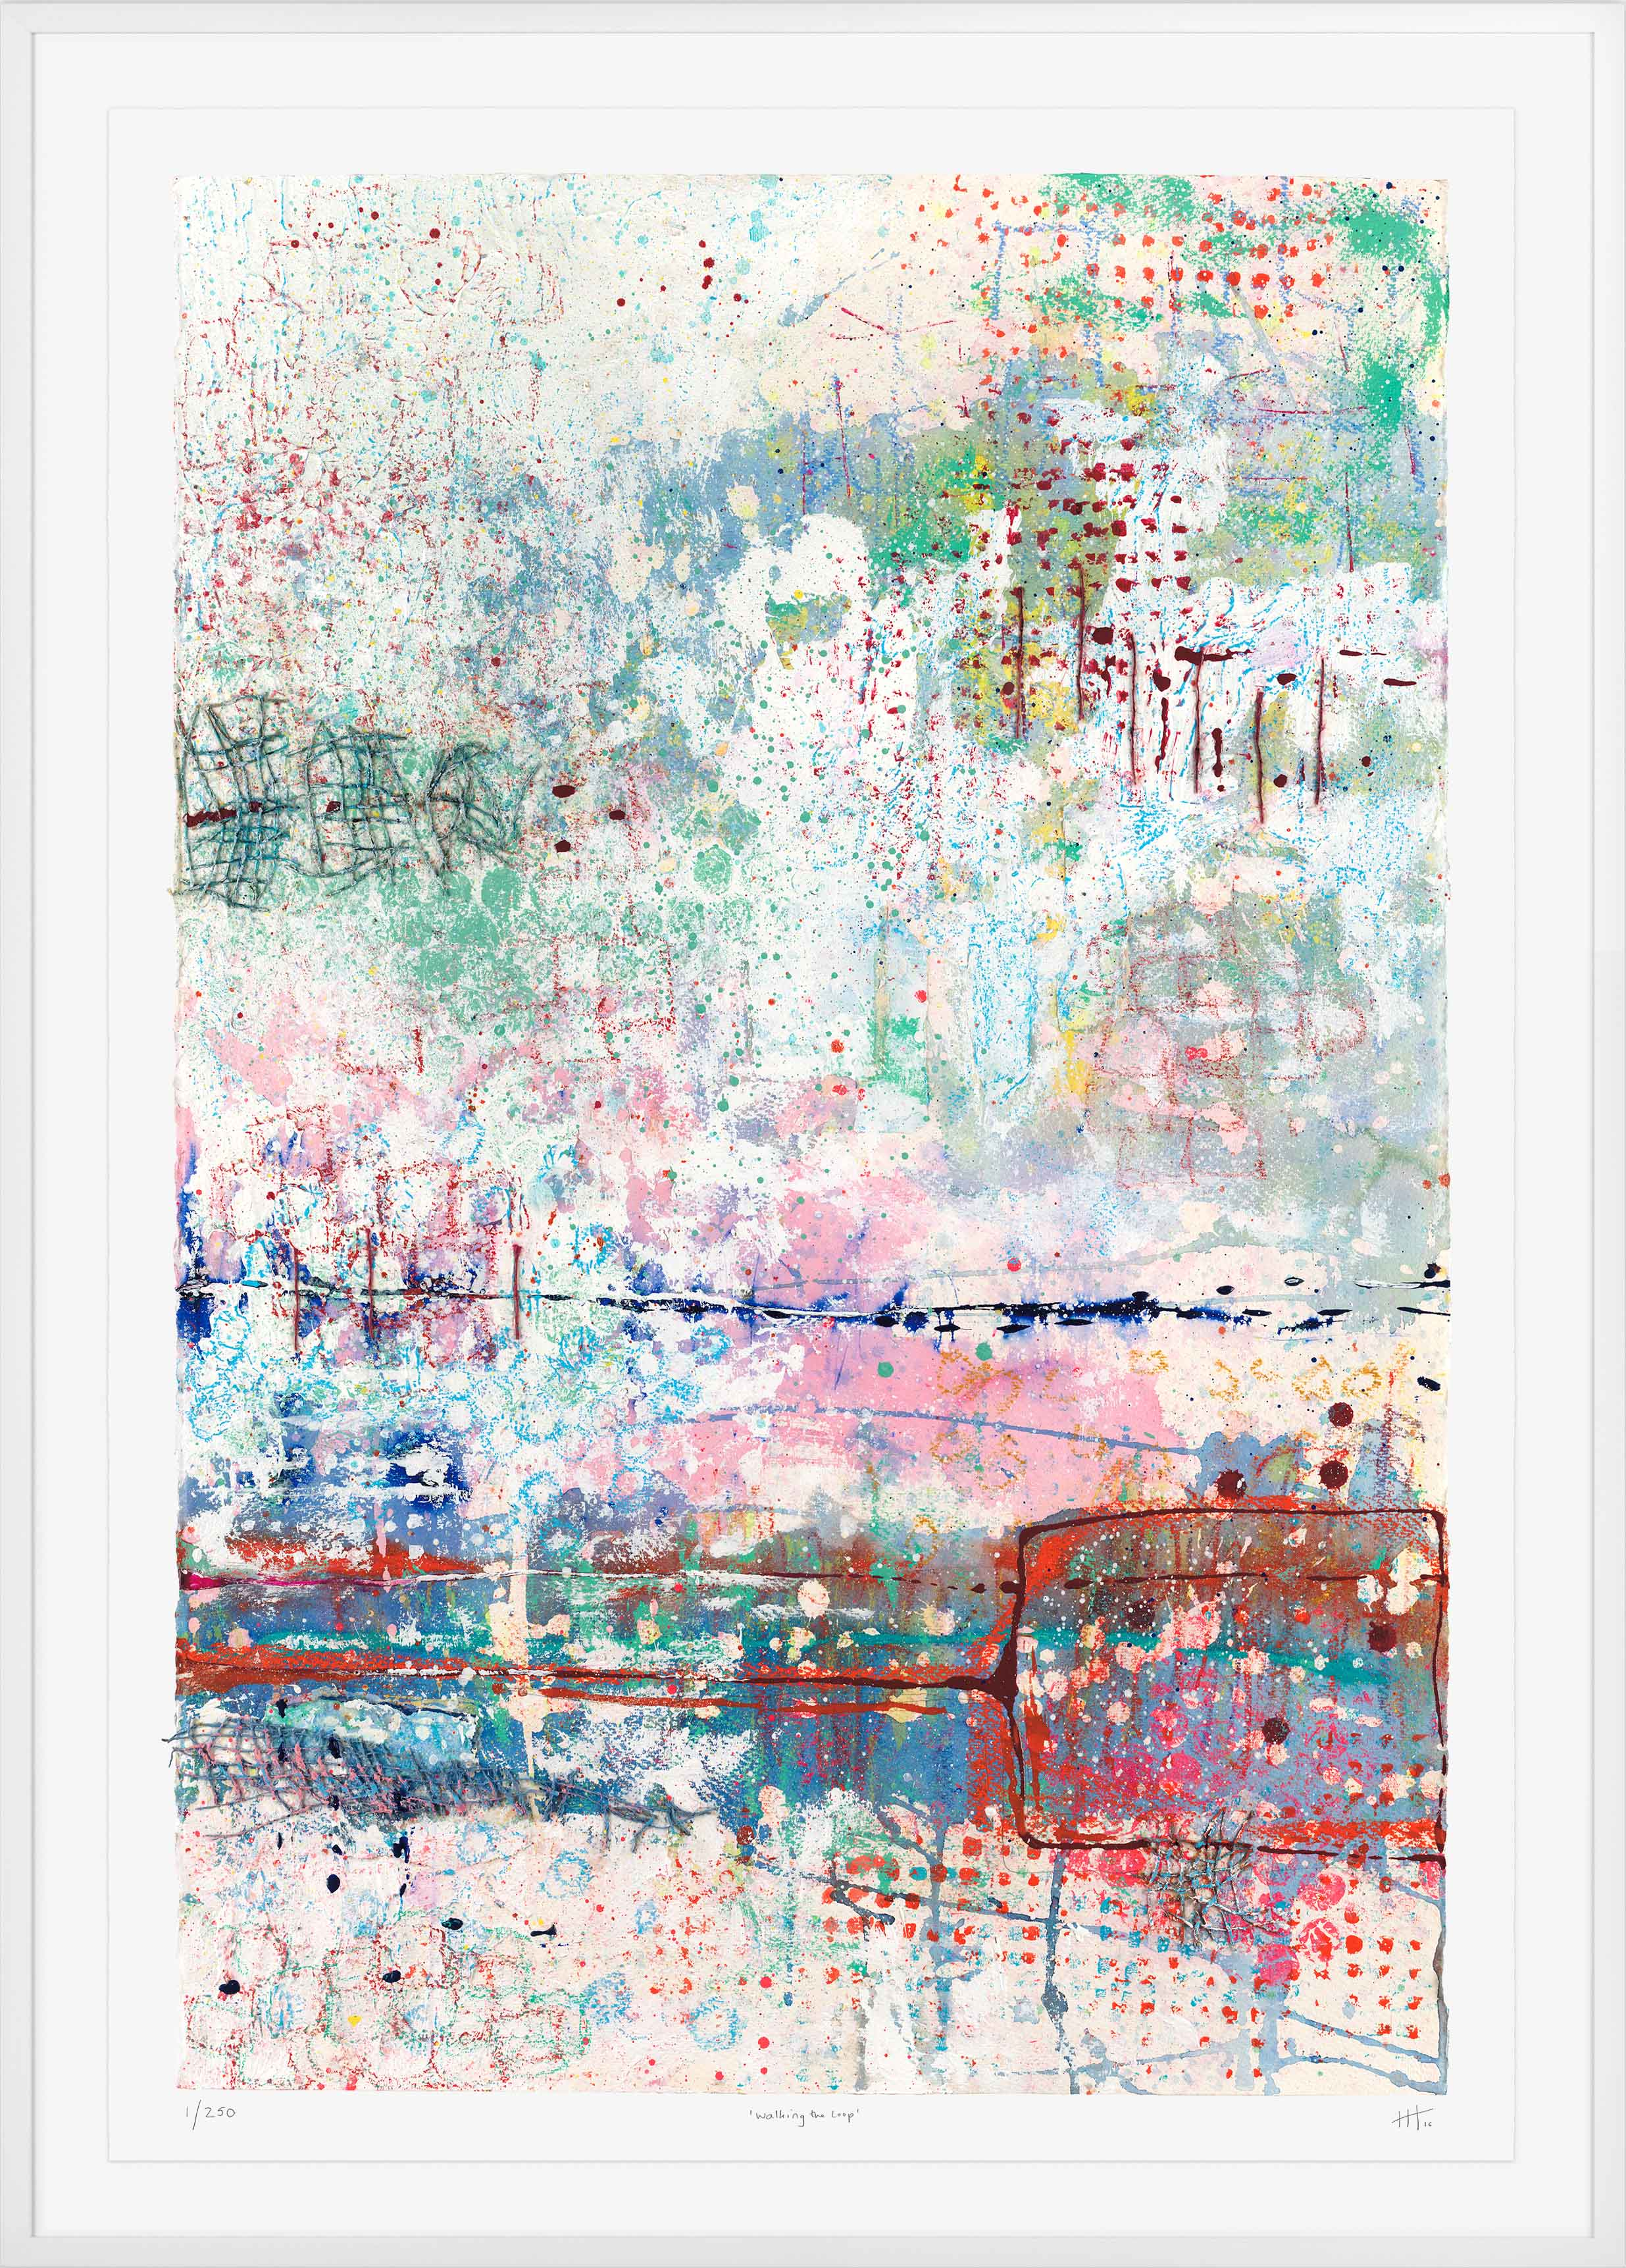 'Walking the Loop' LIMITED EDITION GICLEE PRINT / Edition of 250 Size: 105cm x 76cm (framed) £475 (includes frame) / £350 unframed  purchase via    contact form